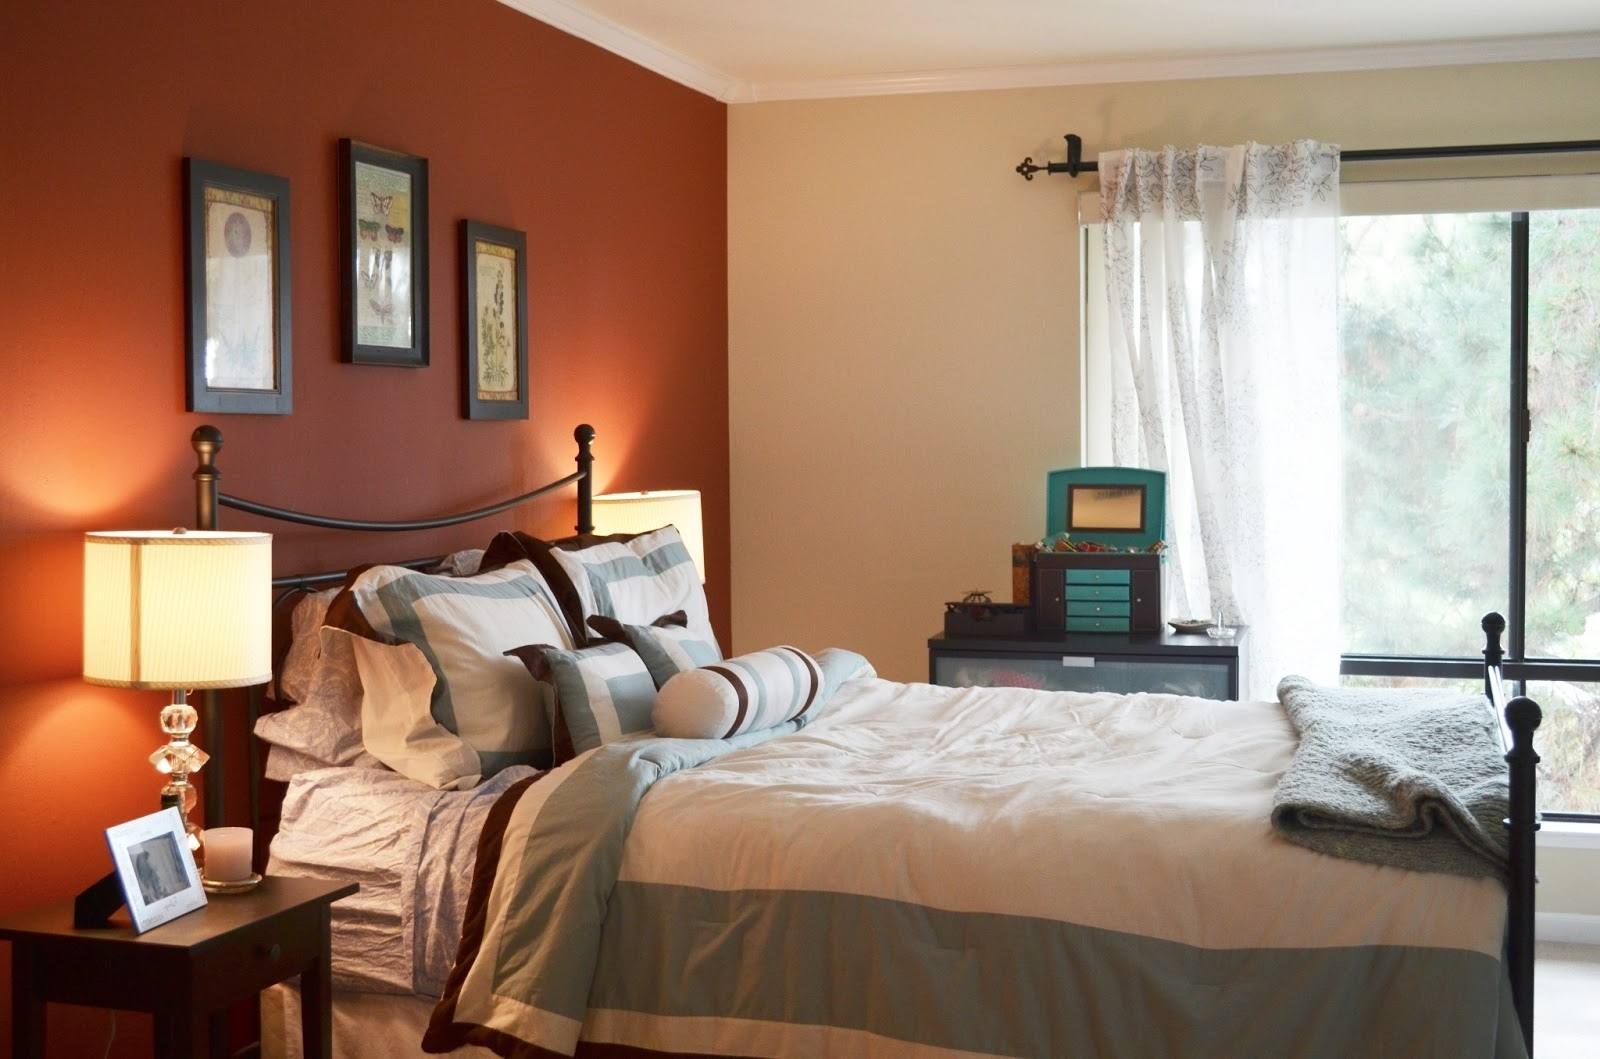 Recent Charming Bedroom Design With Orange Accents Wall Painted And Intended For Wall Colors And Accents (View 10 of 15)